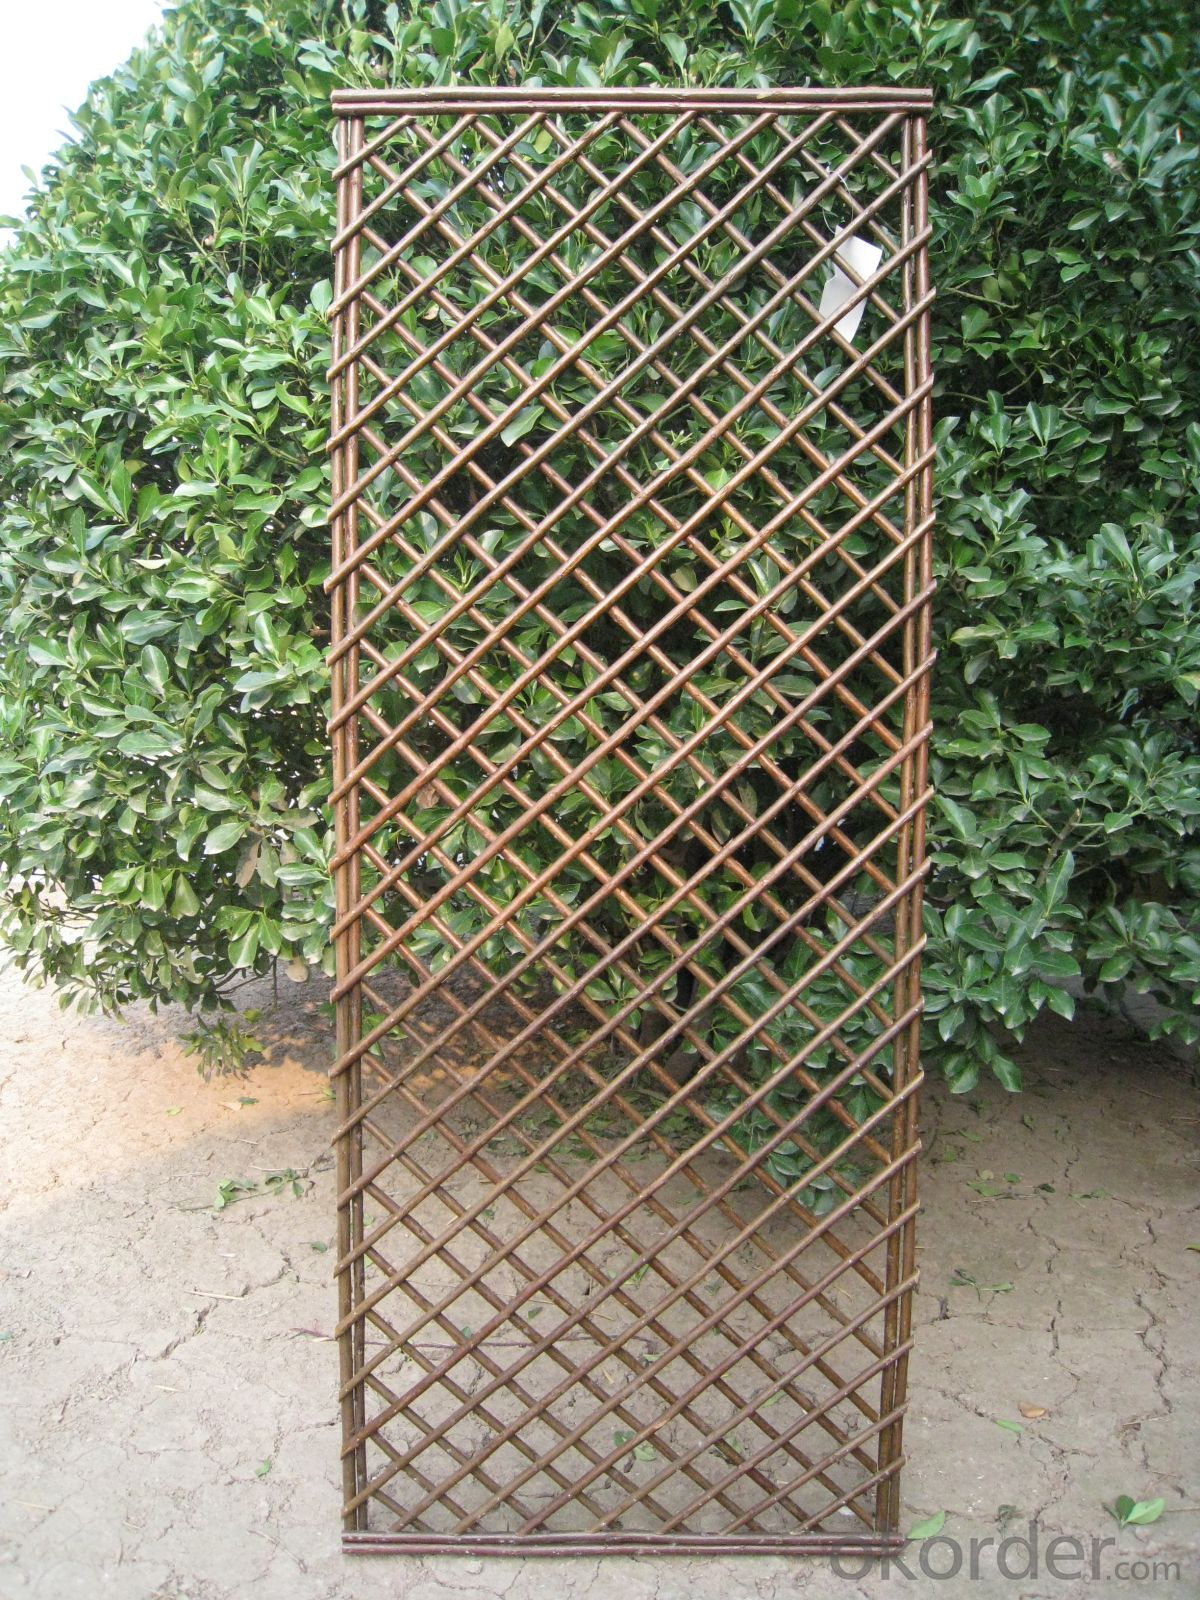 WICKER SCREEN GARDENING DECORATING PANEL